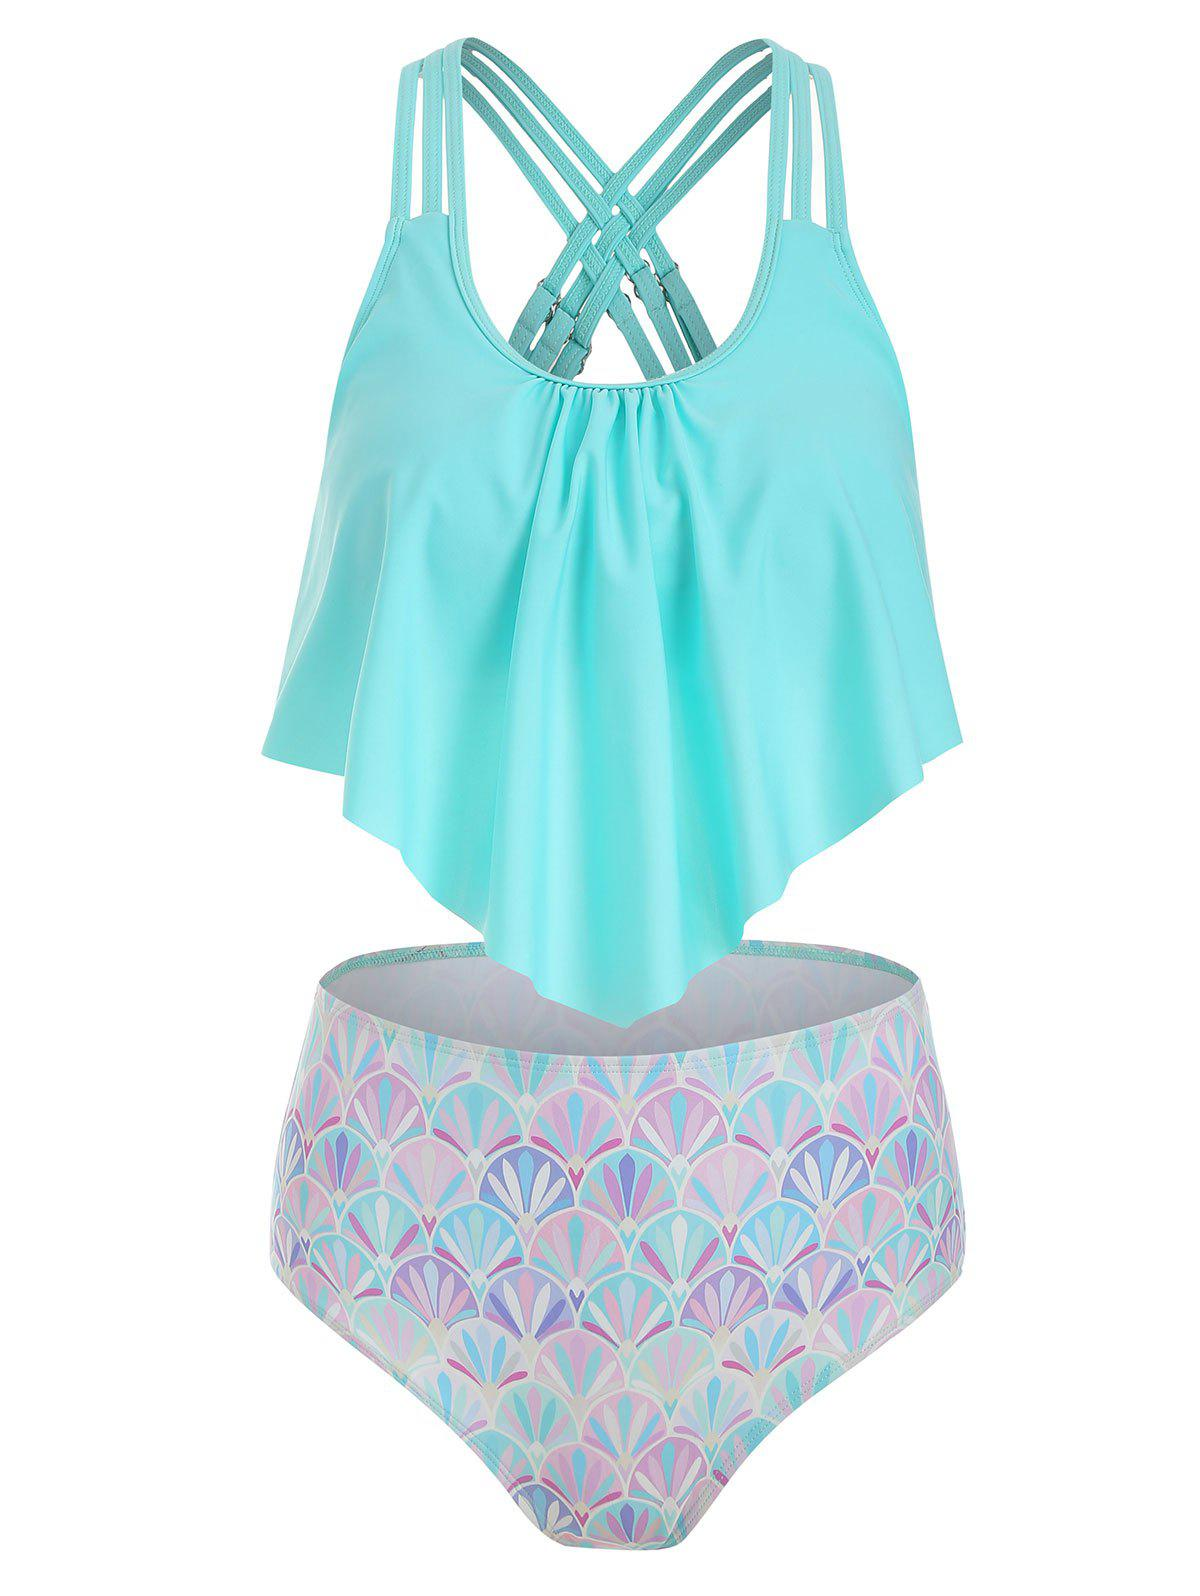 Strappy Flounce Overlay Mermaid Tankini Swimsuit - LIGHT AQUAMARINE S